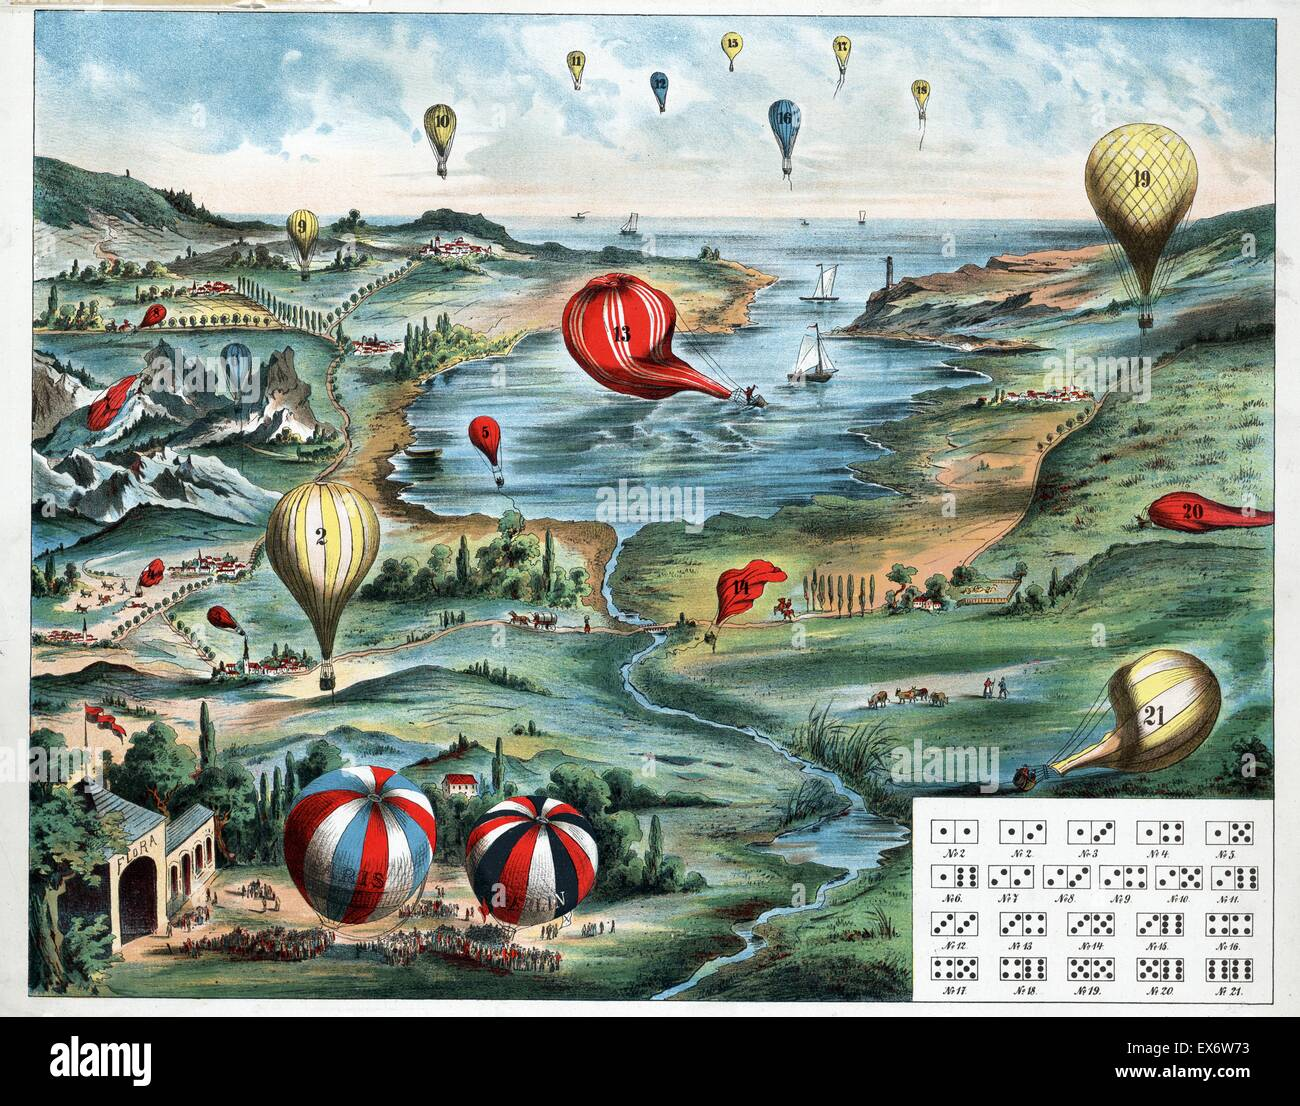 game board and instructions depicts a varied landscape and waterfront filled with numbered balloons. Dated 1890 - Stock Image